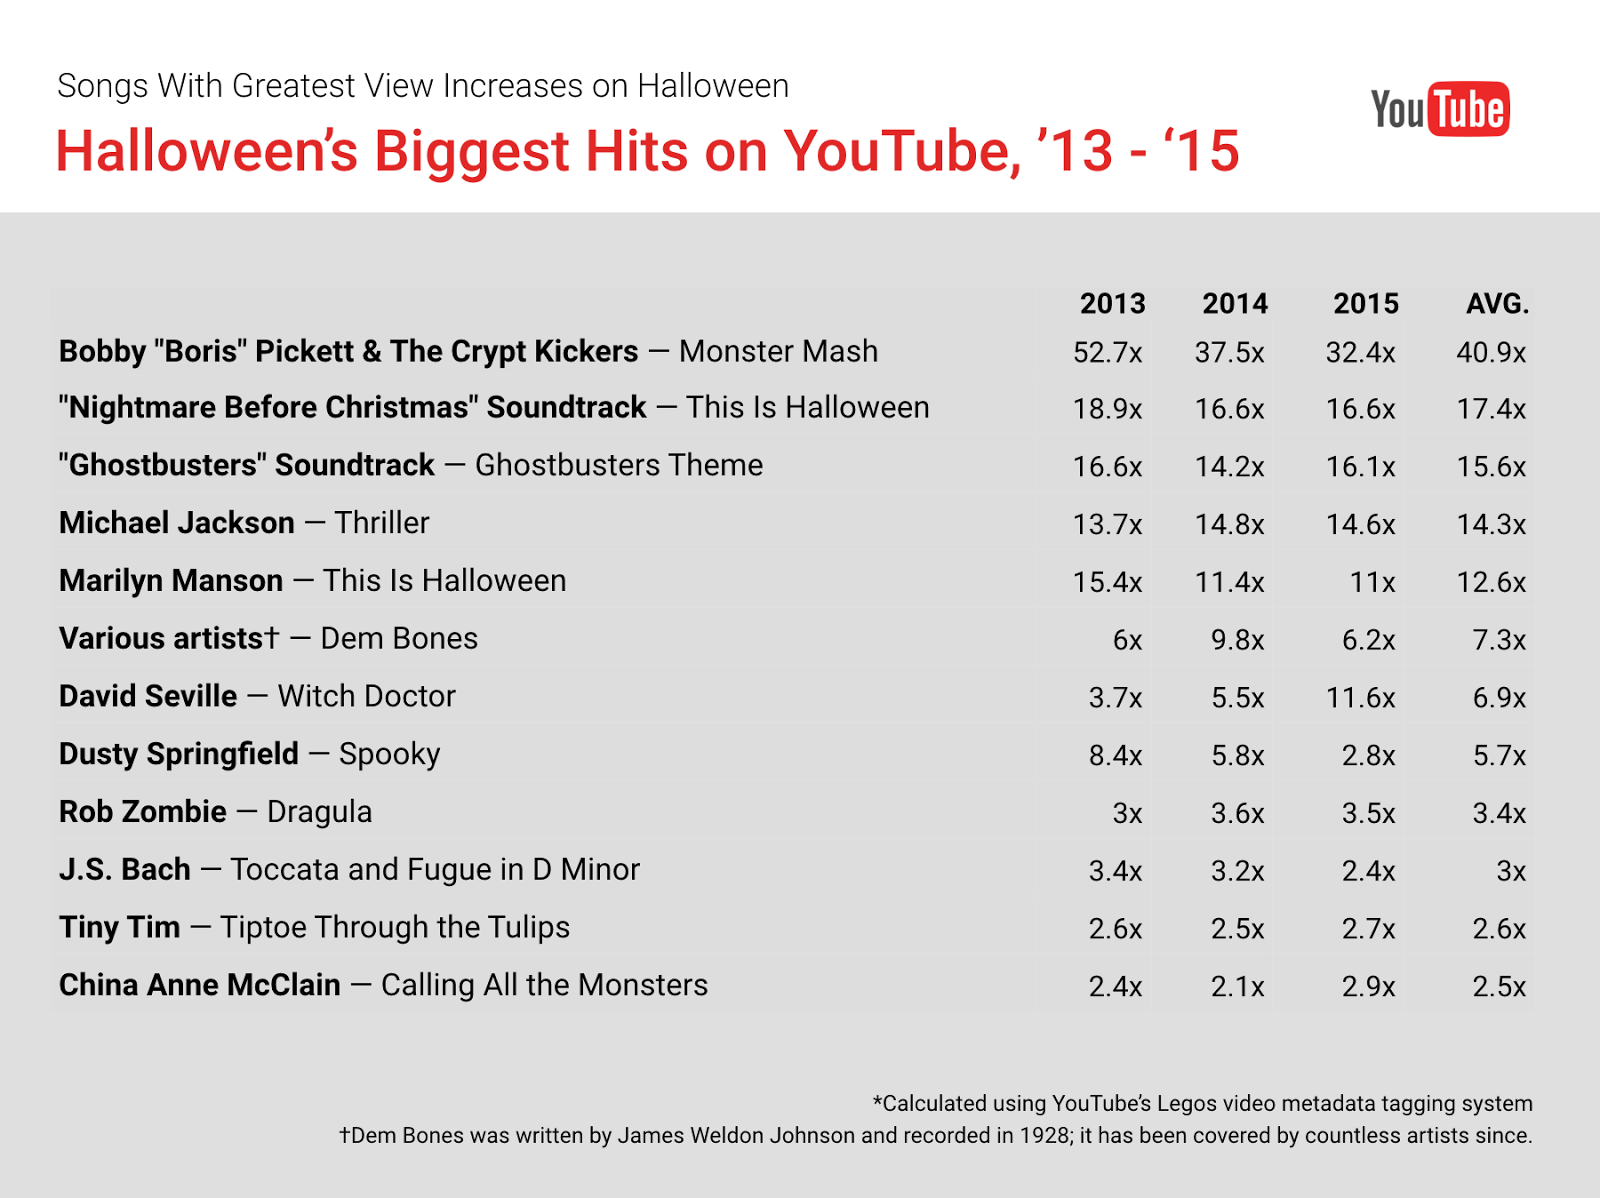 top 12 most popular halloween songs on youtube